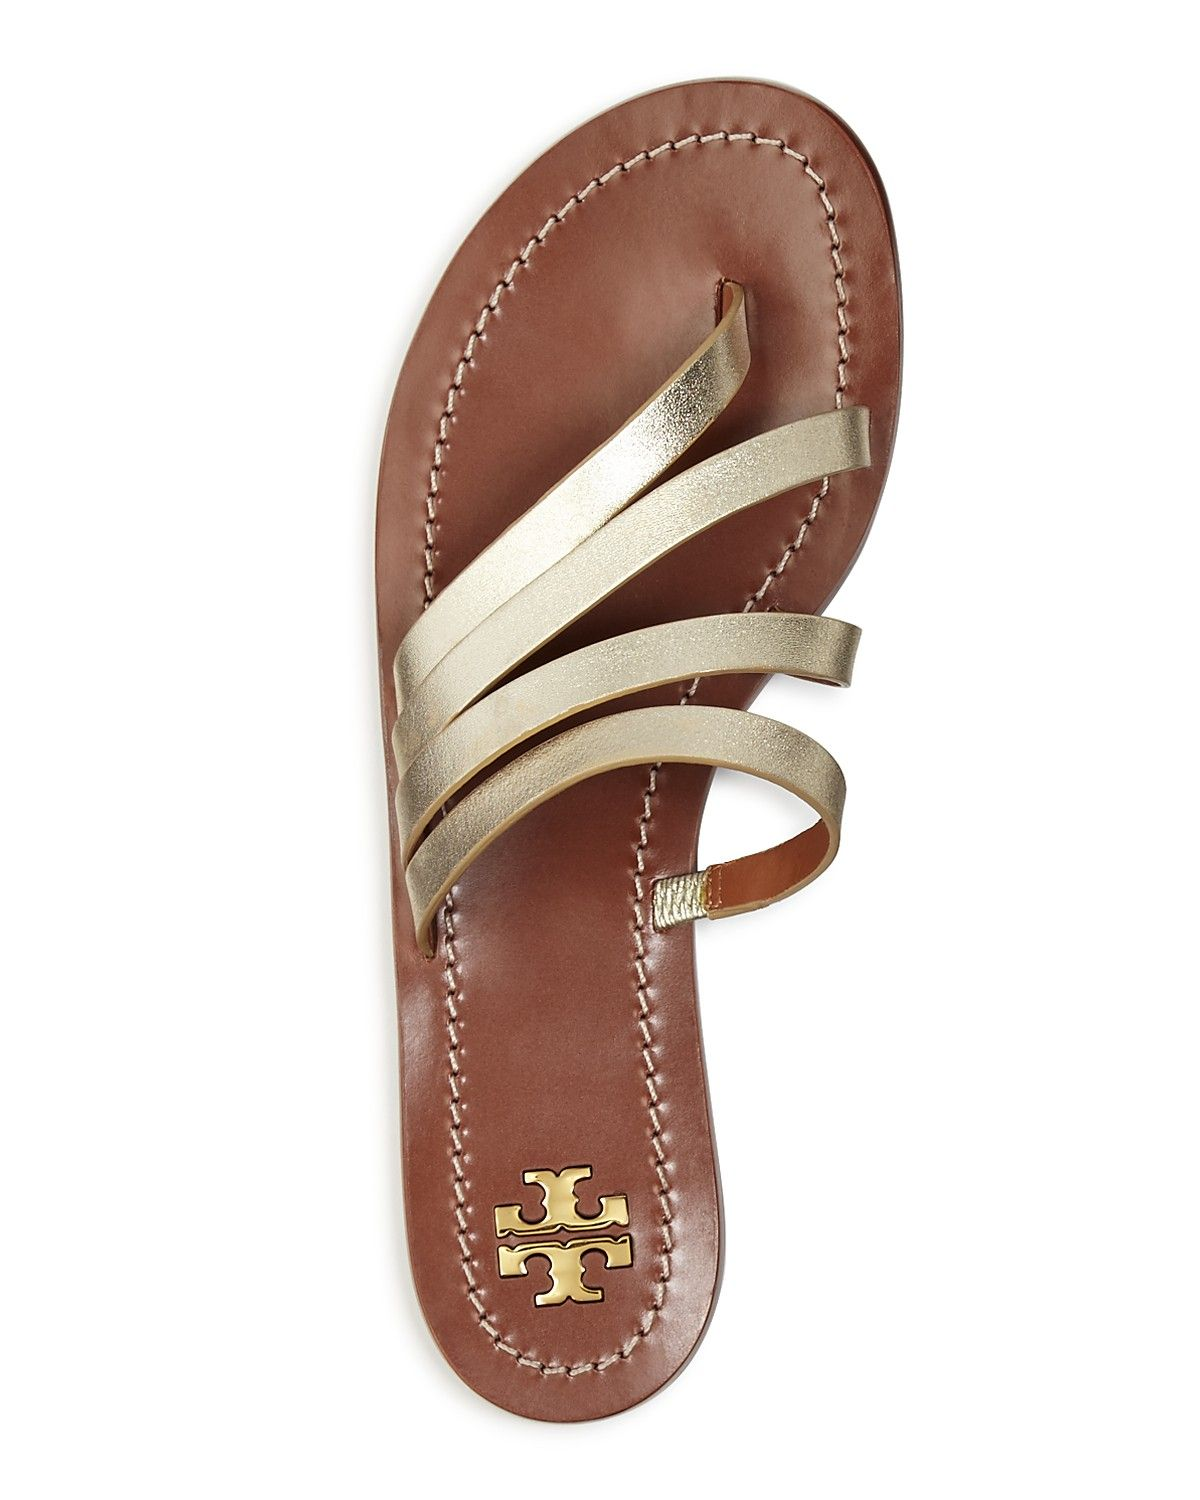 511895f1f Tory Burch Patos Metallic Leather Thong Sandals